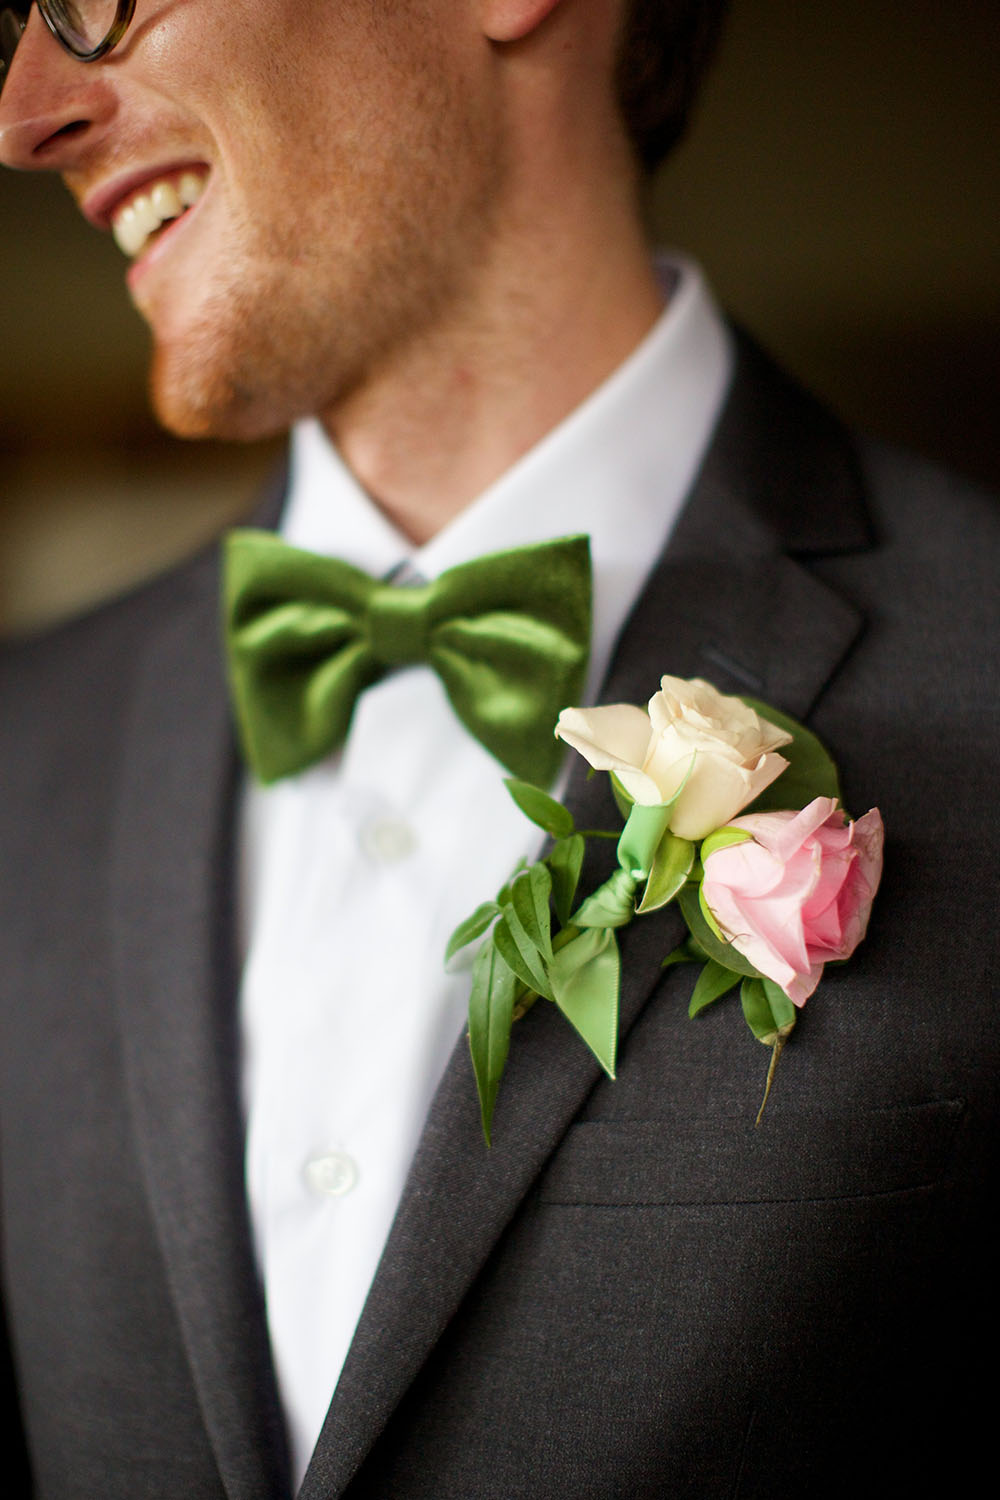 Stylish groom with a pink rose boutonniere and green velvet bow tie - Bliss Wedding Design and Anna Kim Photography